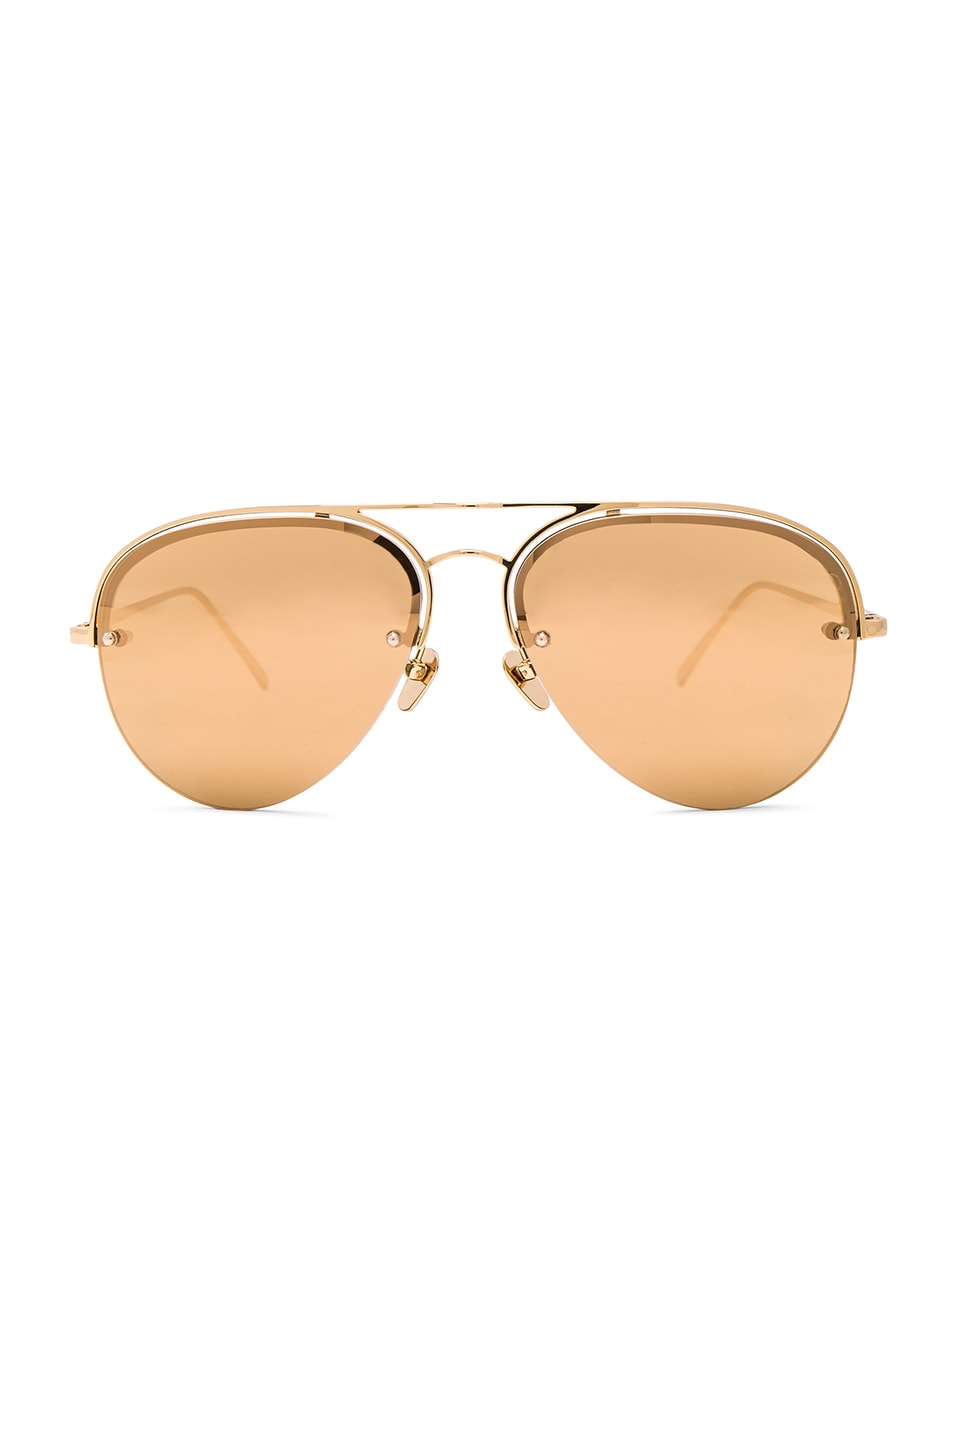 Image 1 of Linda Farrow Aviator Sunglasses in Yellow Gold